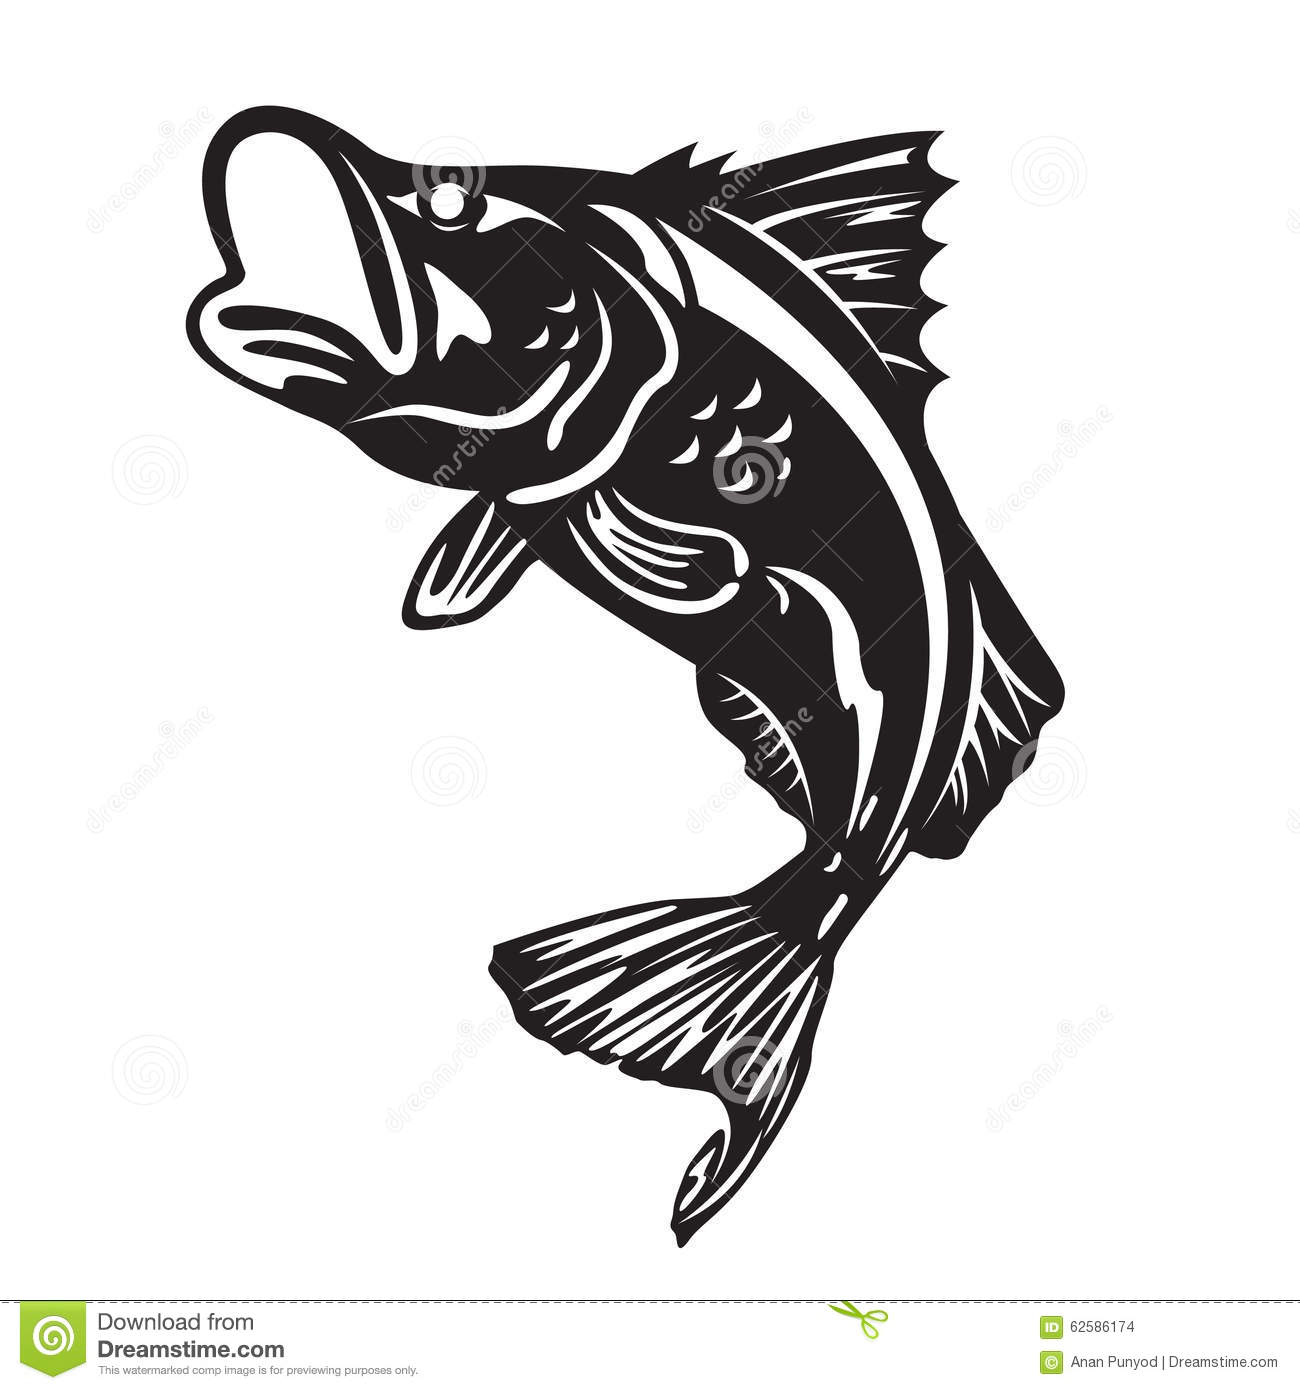 The Barramundi Fish Jump Vector Art Design Stock Vector.